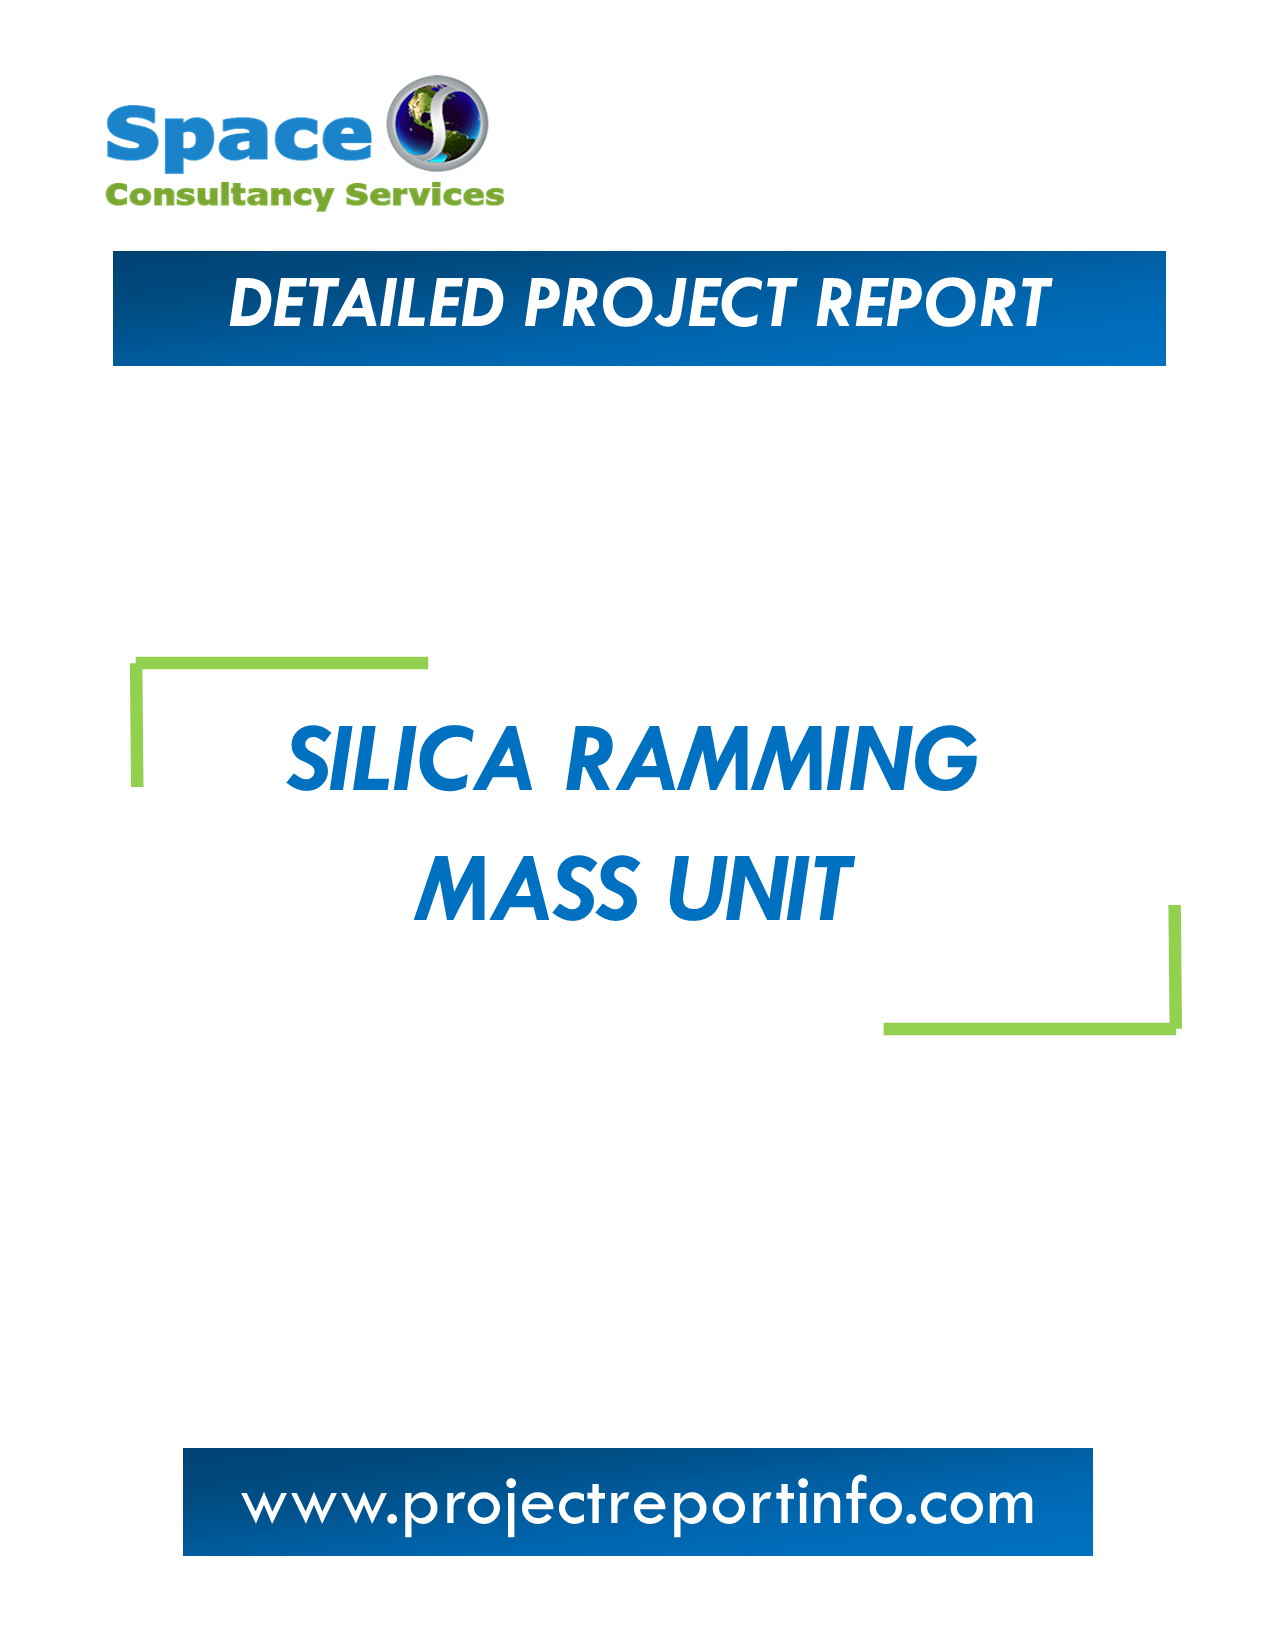 Project Report on Silica Ramming Mass Unit